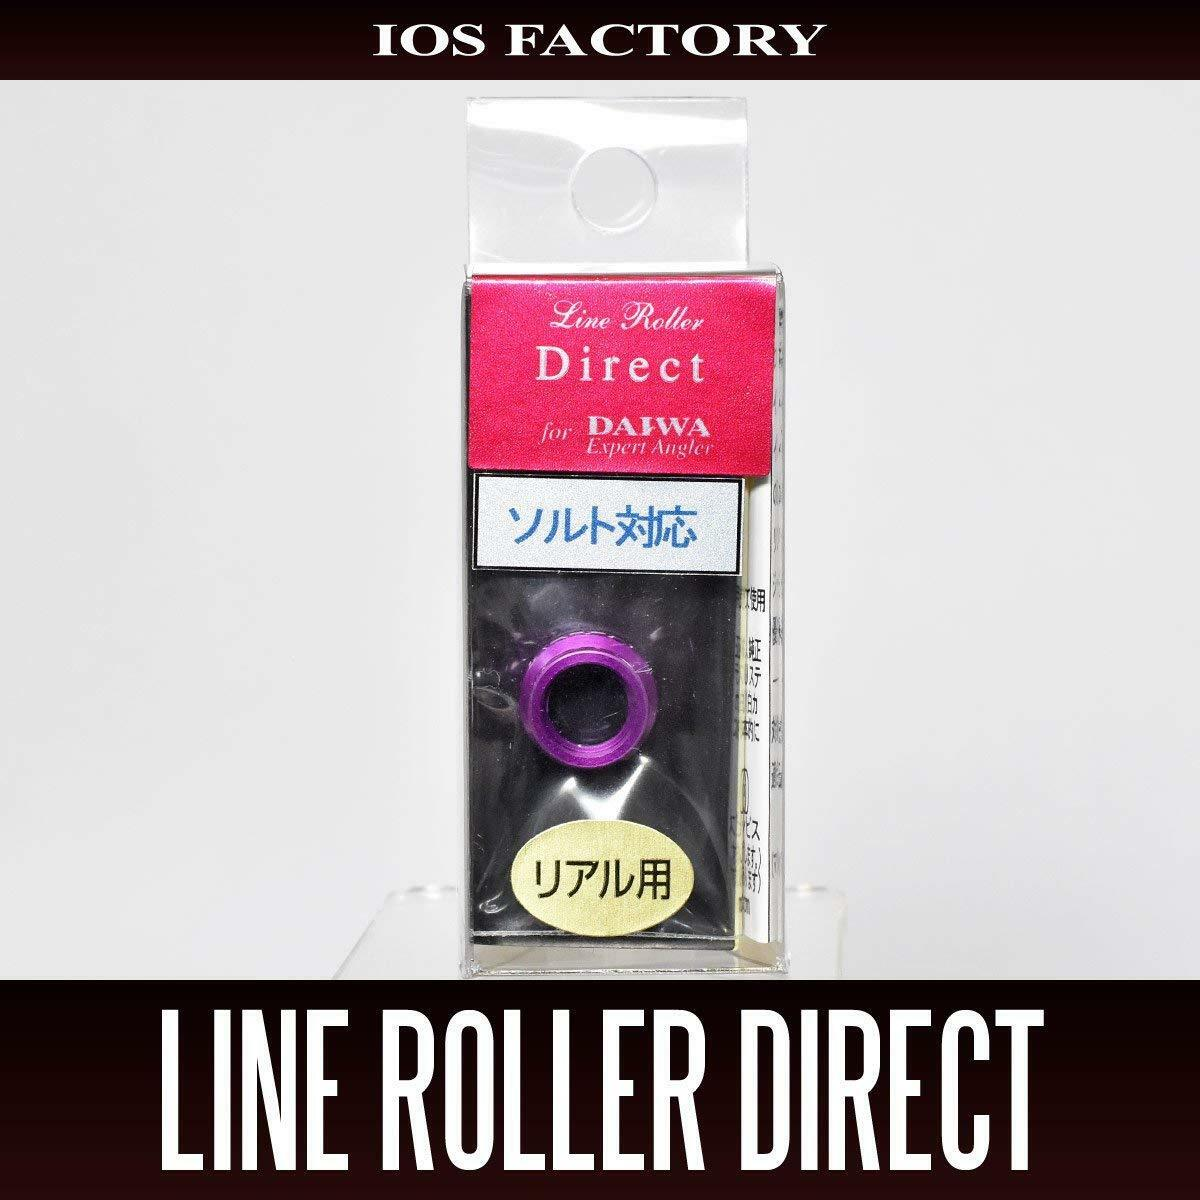 IOS FACTORY Line Roller Direct for DAIWA REAL-TYPE PURPLE